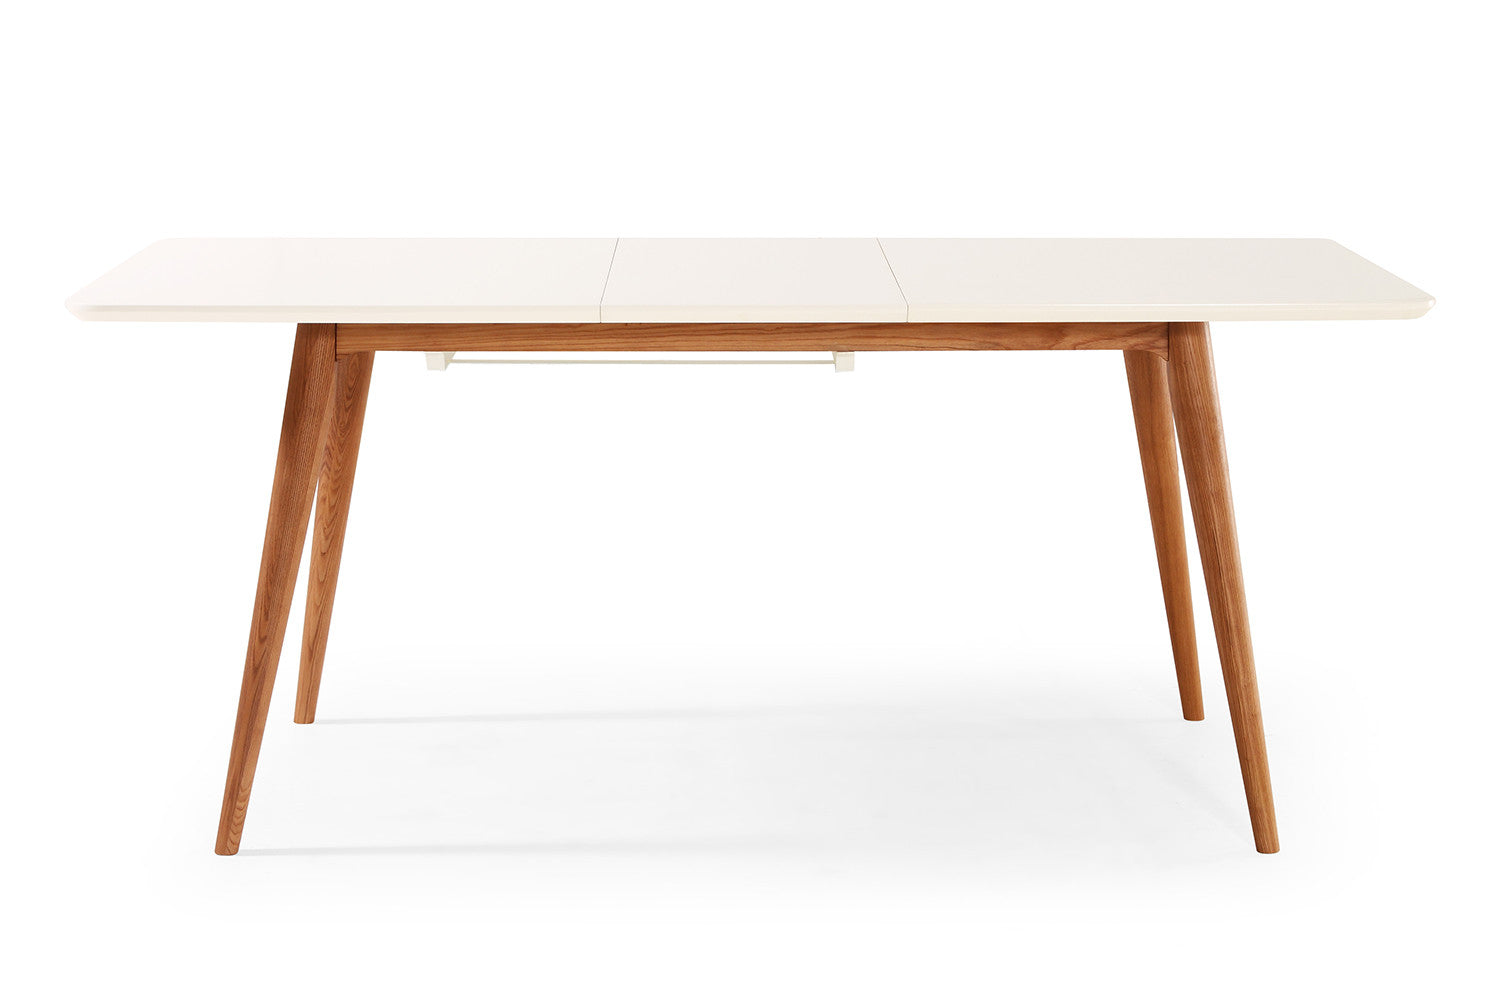 Table de salle manger extensible scandinave wyna dewarens for Table scandinave blanche